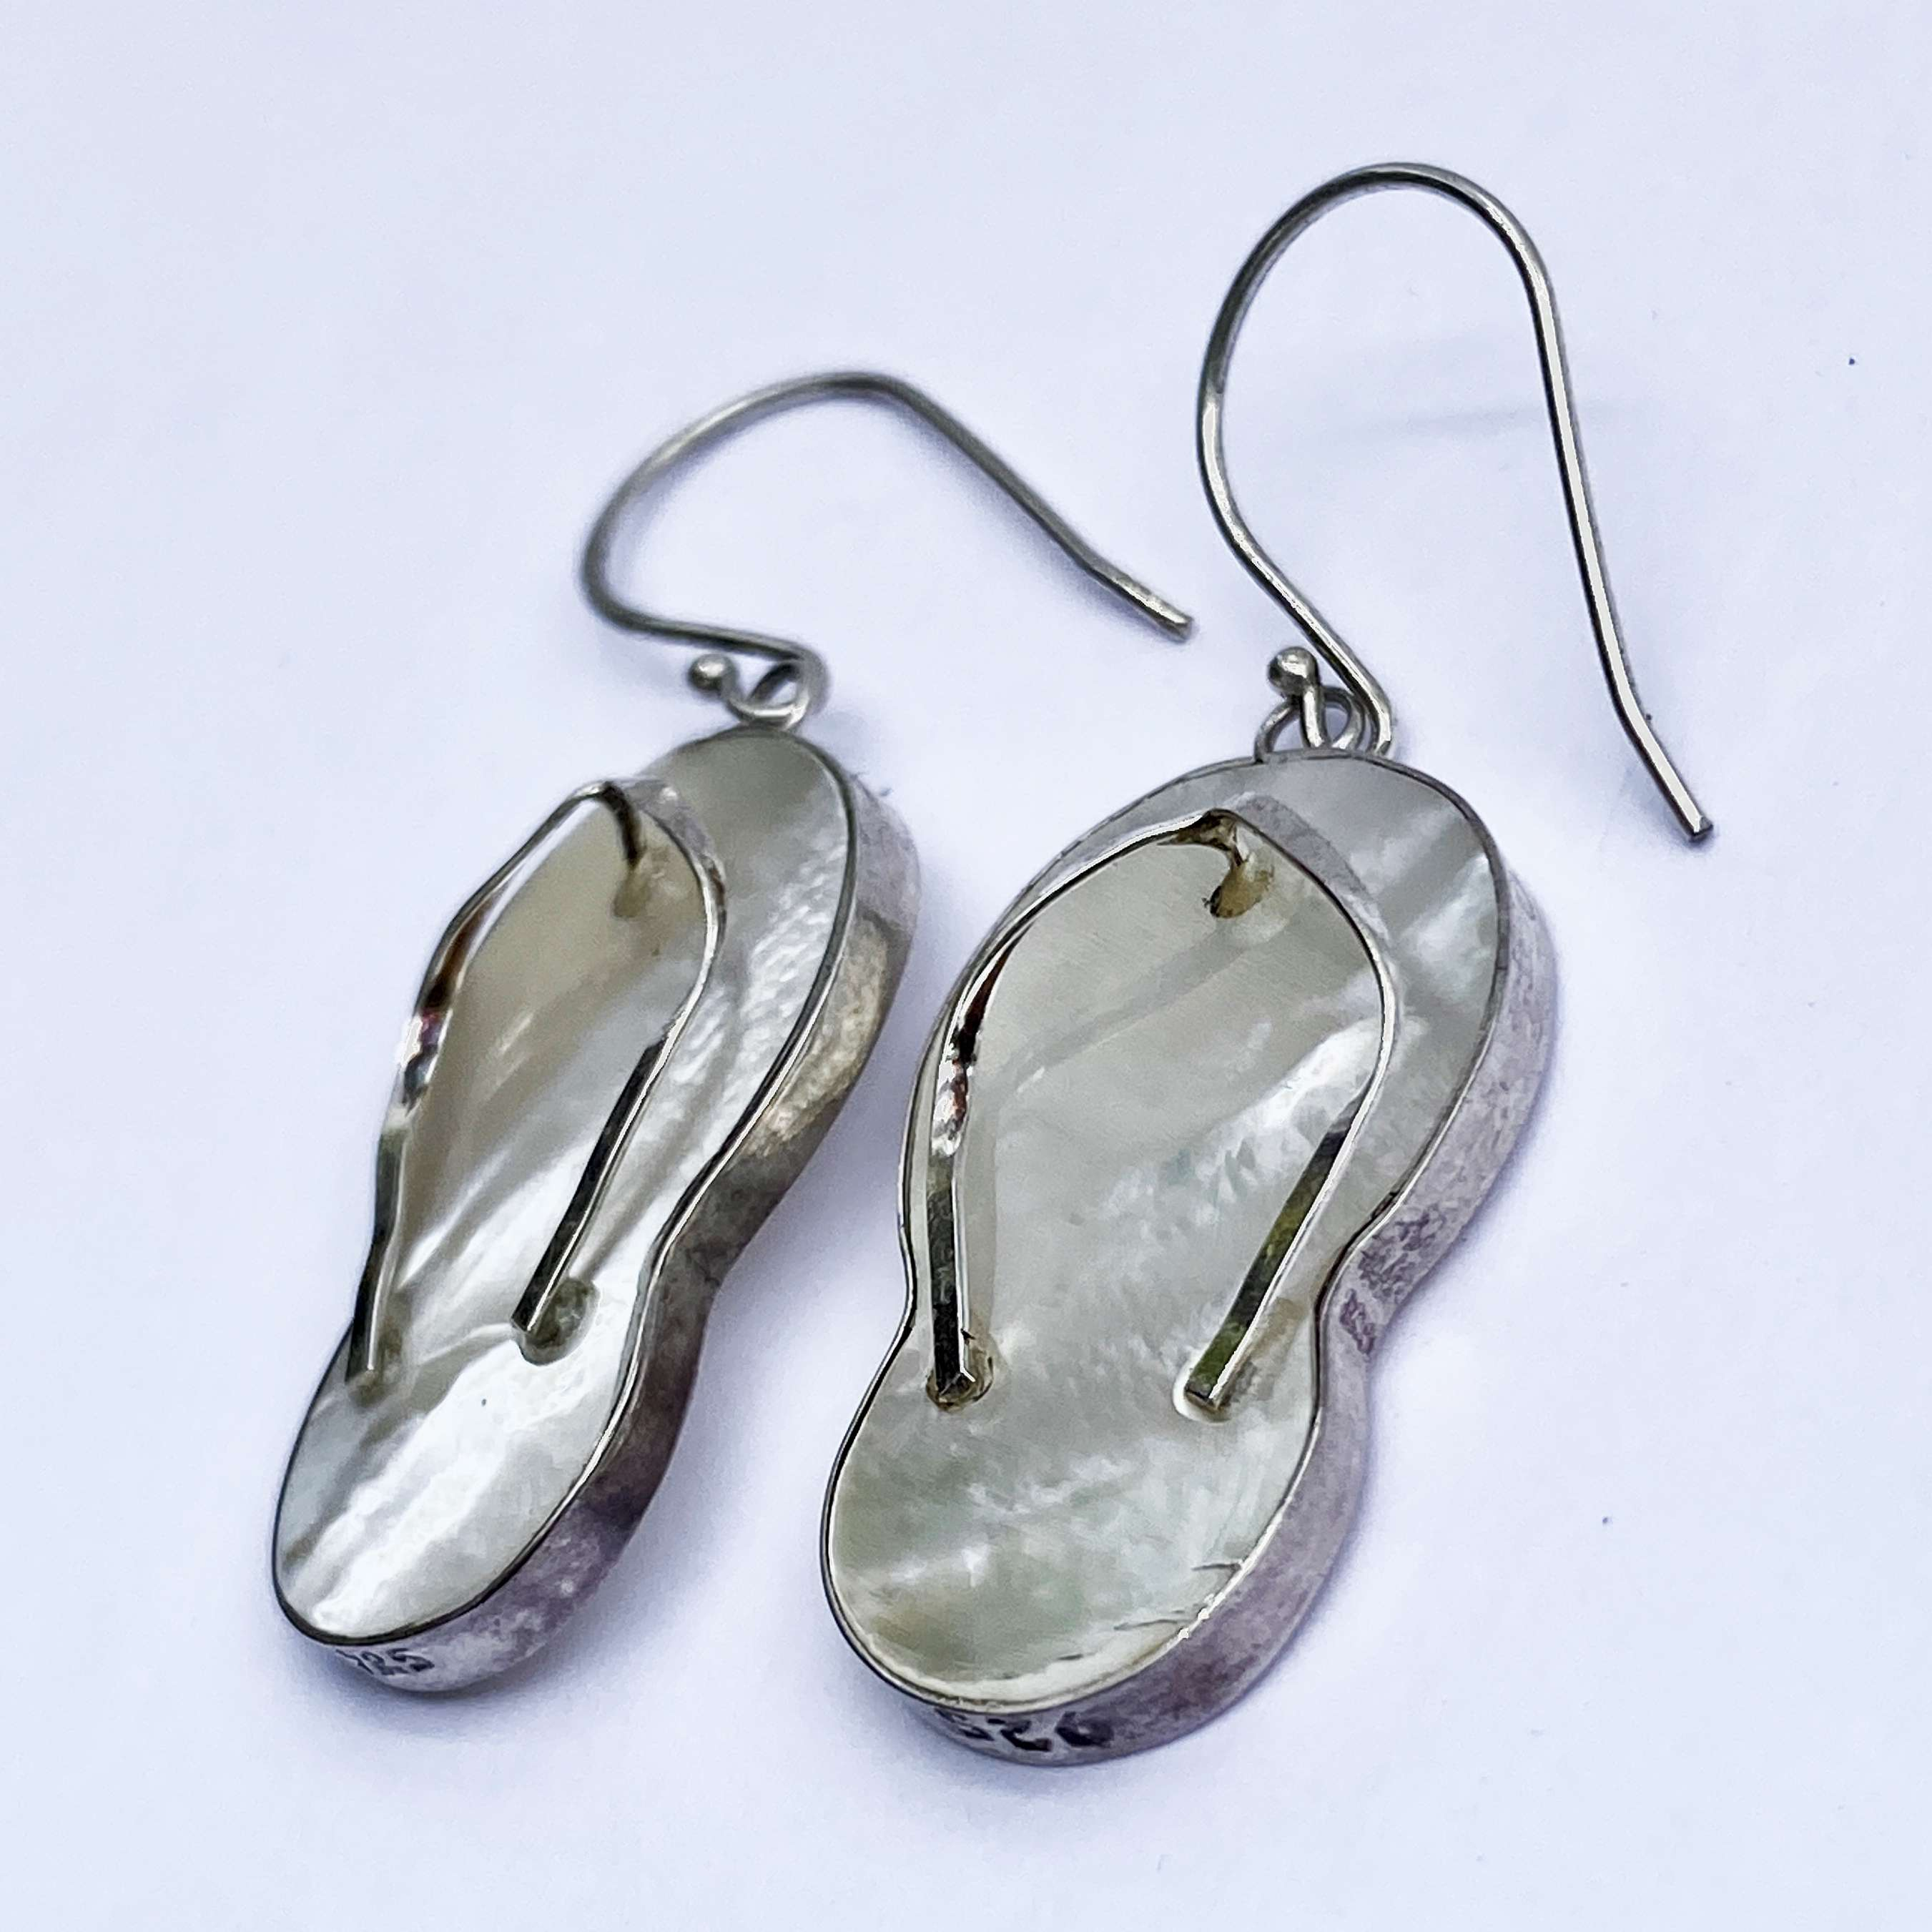 (HANDMADE 925 BALI SILVER SANDAL EARRINGS WITH MOTHER OF PEARL)